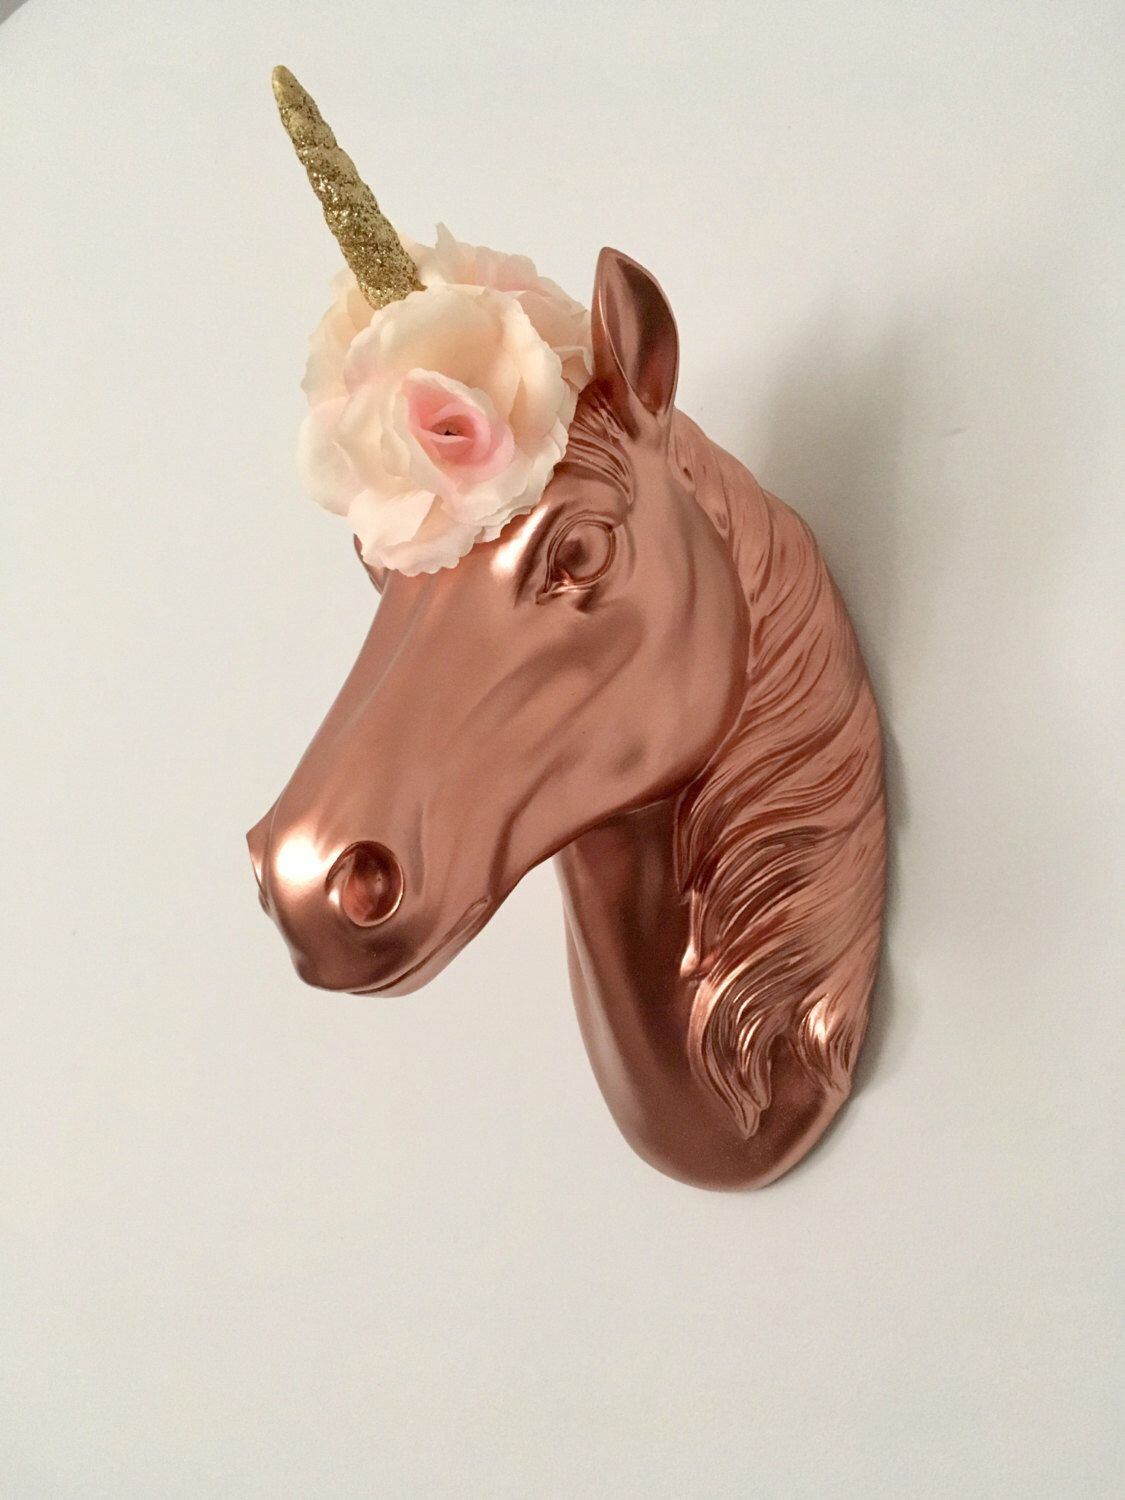 Upcycled rose gold unicorn head mount with gold glitter staff and